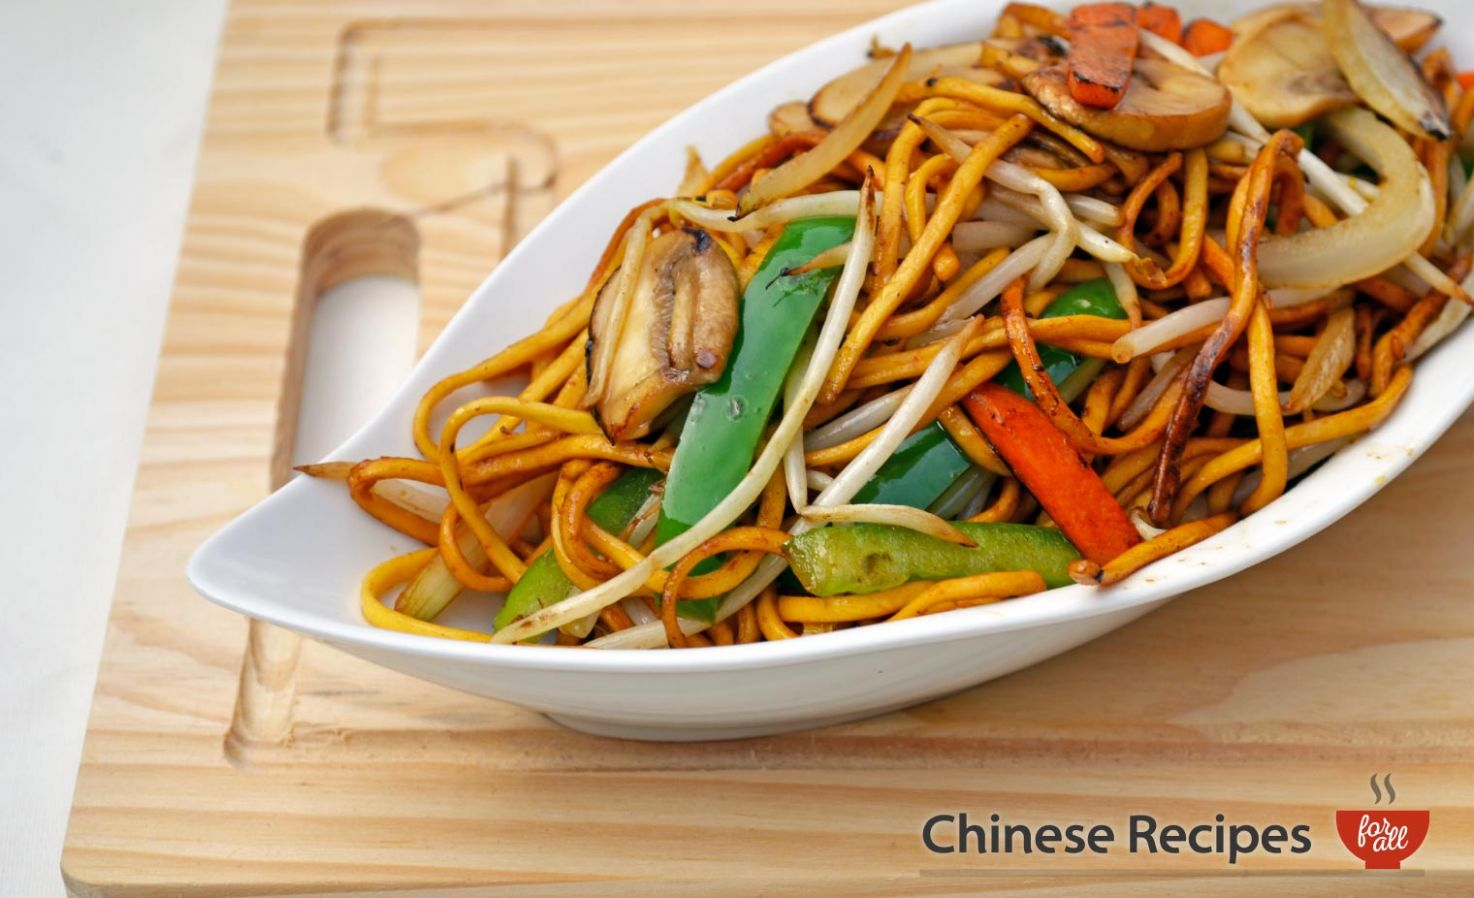 Vegetable Chow Mein Noodles - Recipes Vegetable Lo Mein